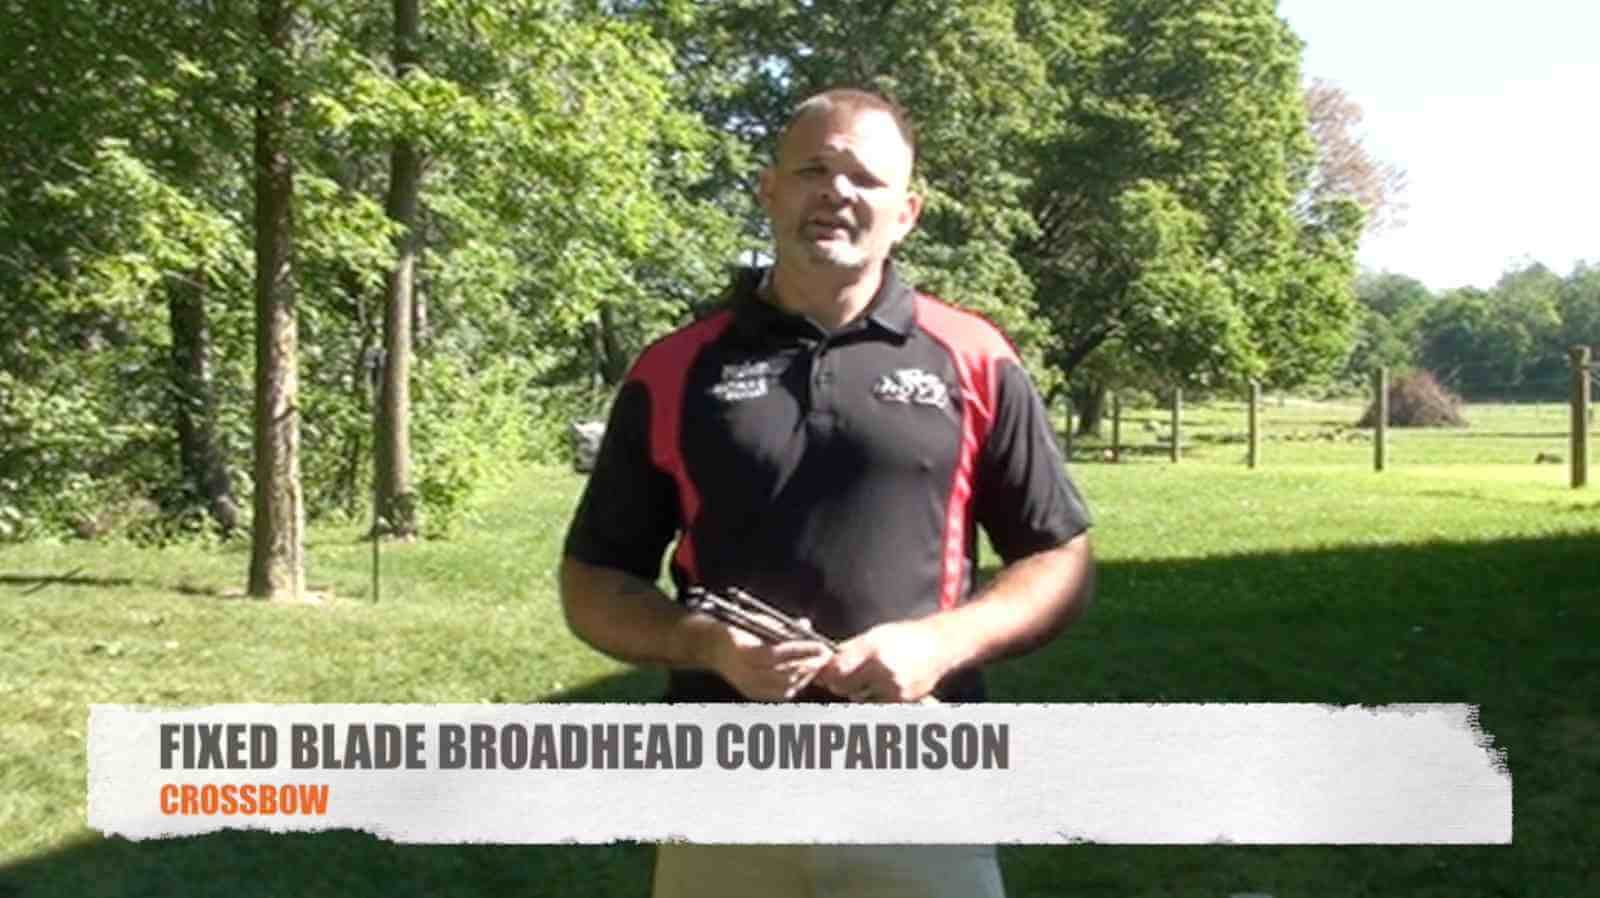 Fixed Blade Broadhead Comparison for Crossbows